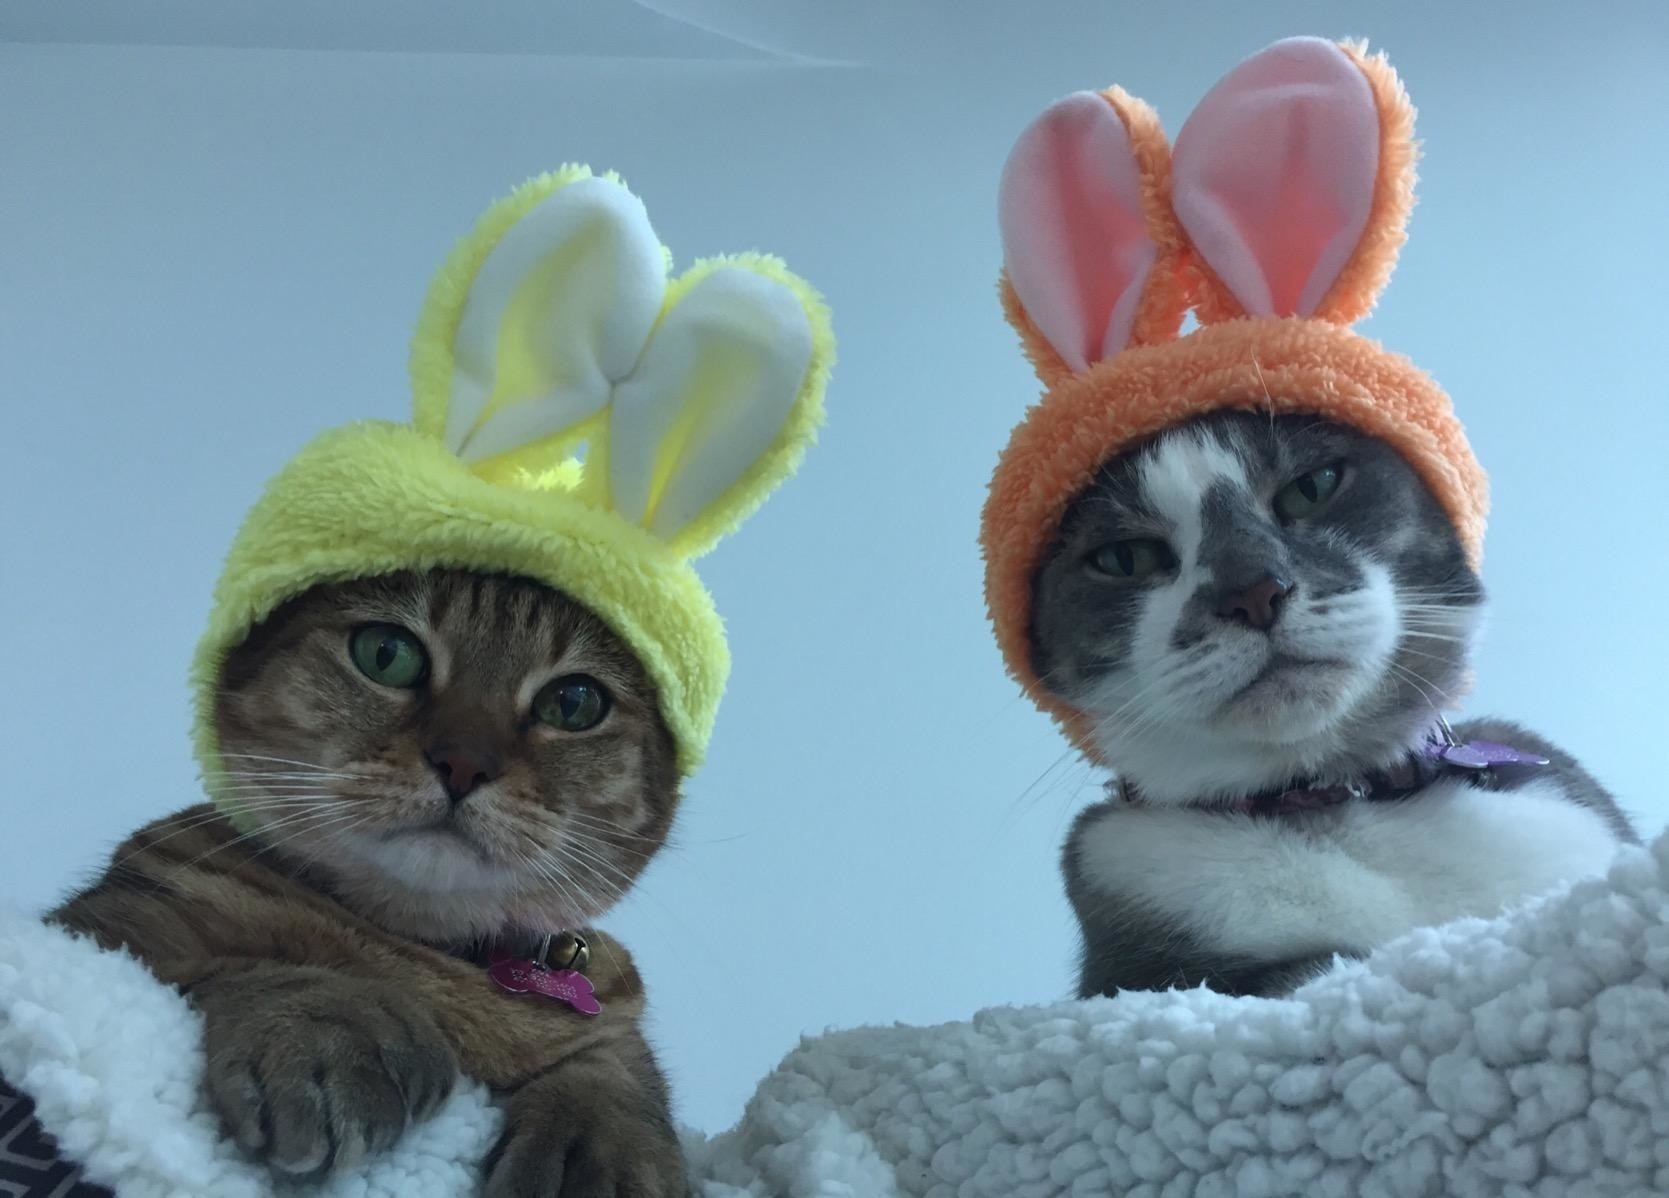 two cats wearing the little hats with bunny ears on them. The cat on the left is wearing a yellow one while the one on the right has on an orange one.